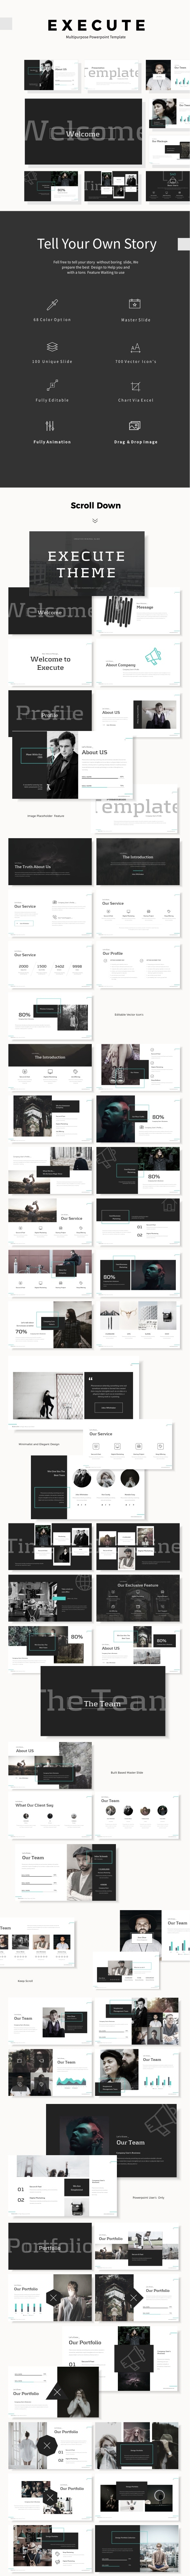 Execute Multipurpose Theme - PowerPoint Templates Presentation Templates